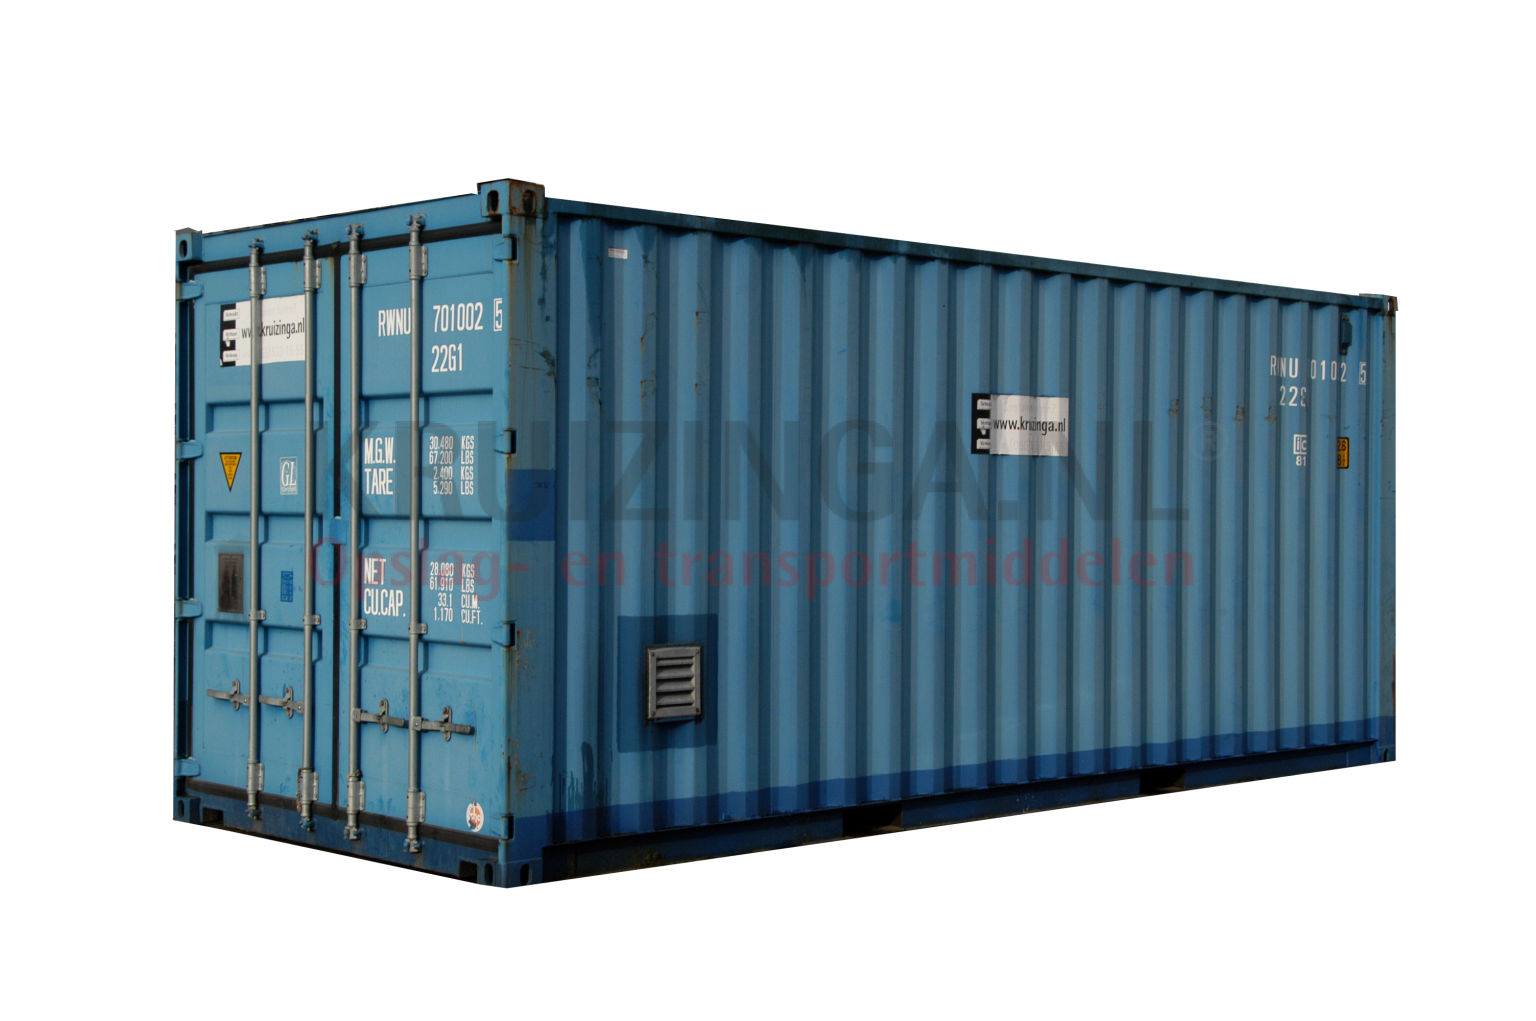 container umweltcontainer 20 fu gebraucht 3950. Black Bedroom Furniture Sets. Home Design Ideas